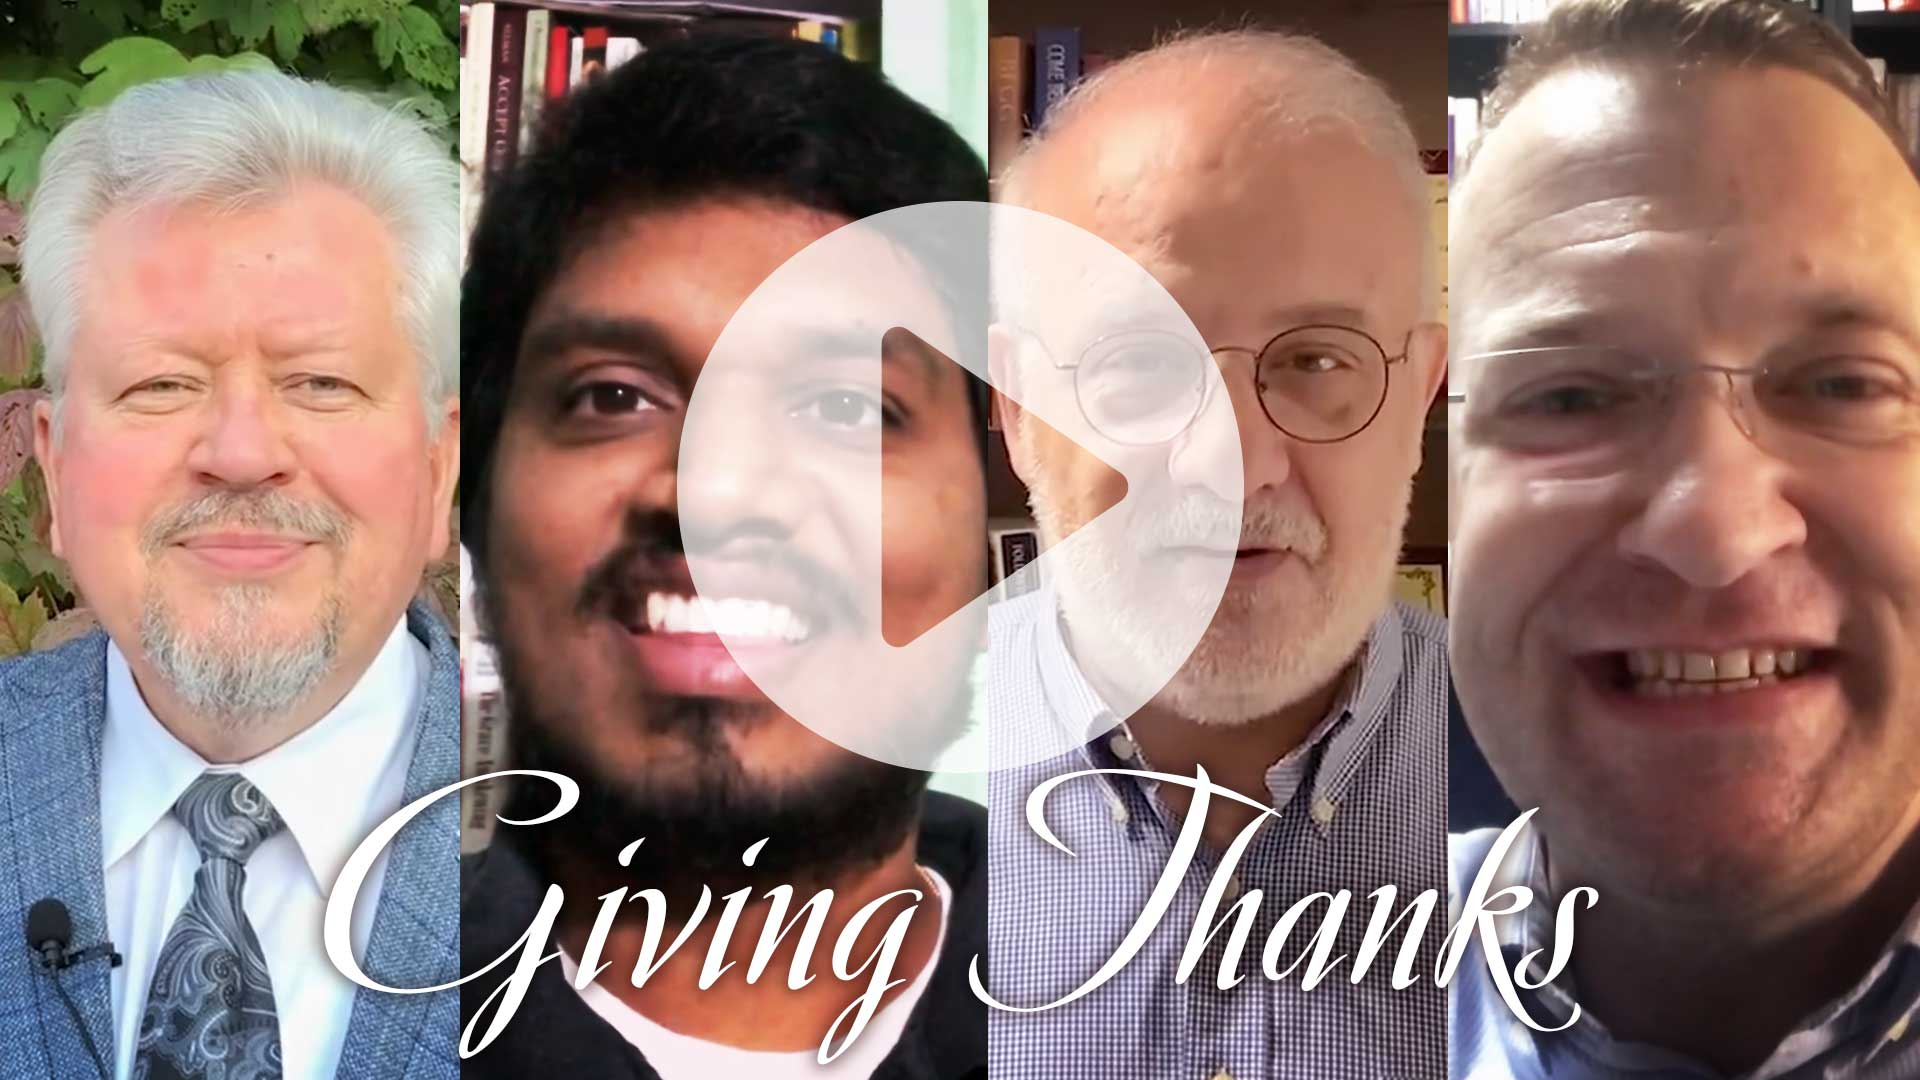 Giving Thanks video